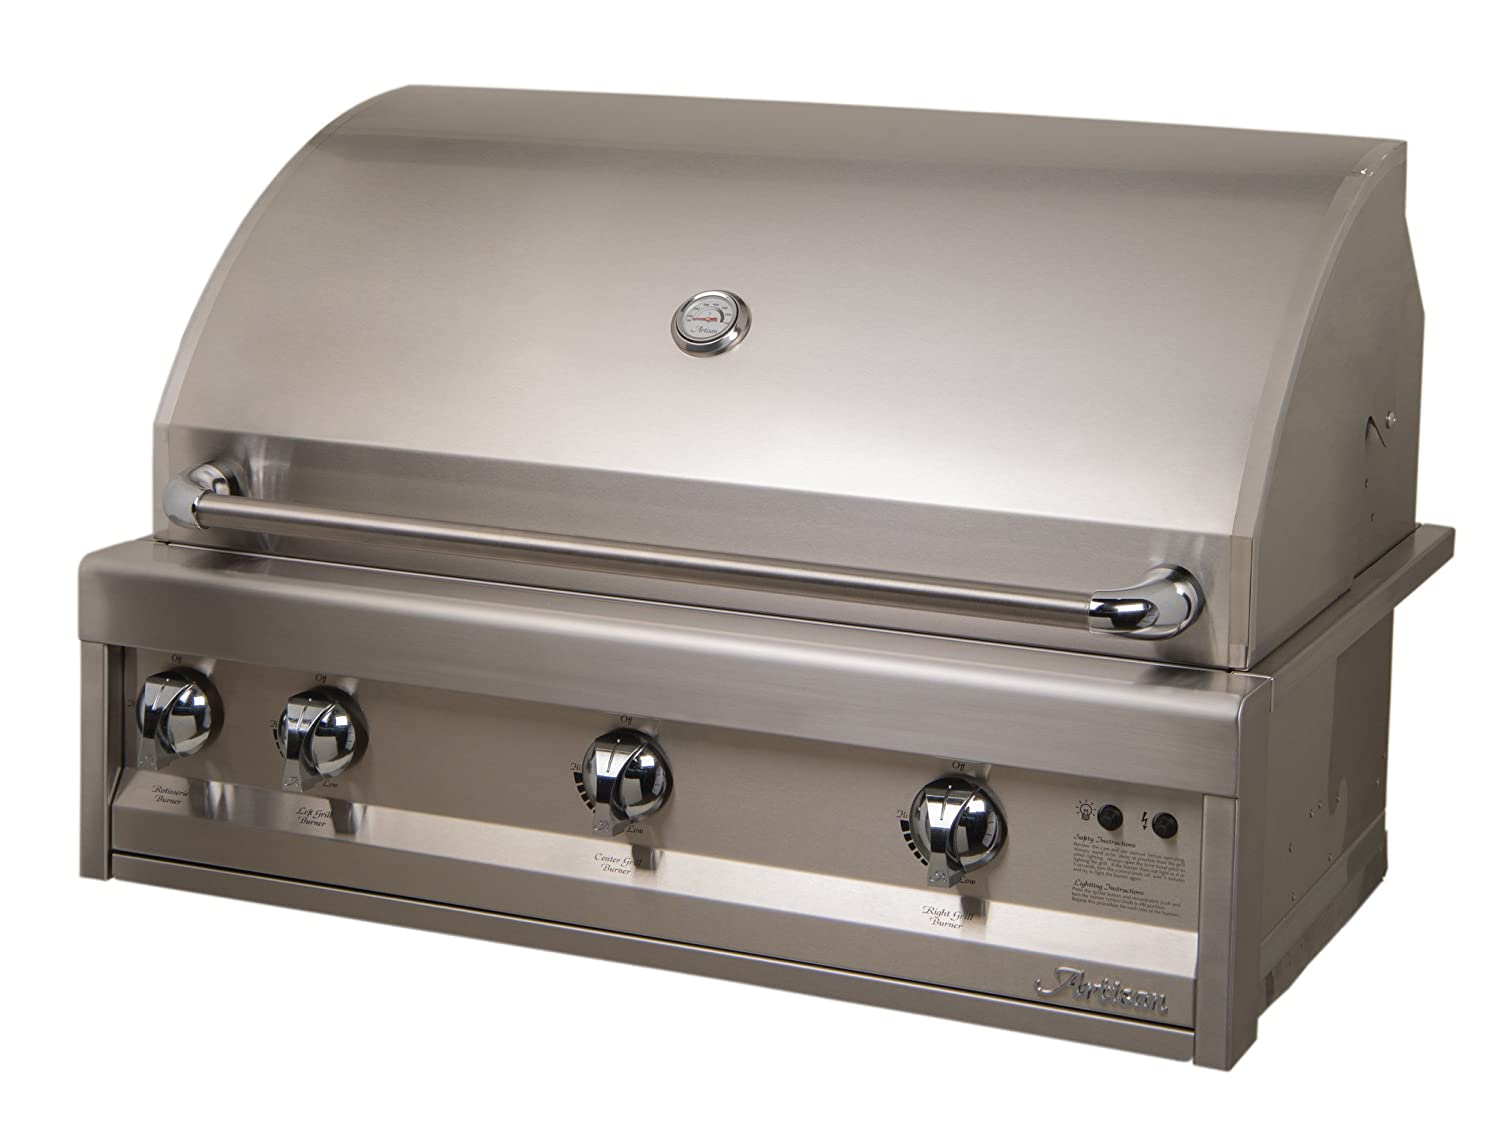 Amazon.com: Artisan Grills Art-36 75000 BTU Built-in Gas ...